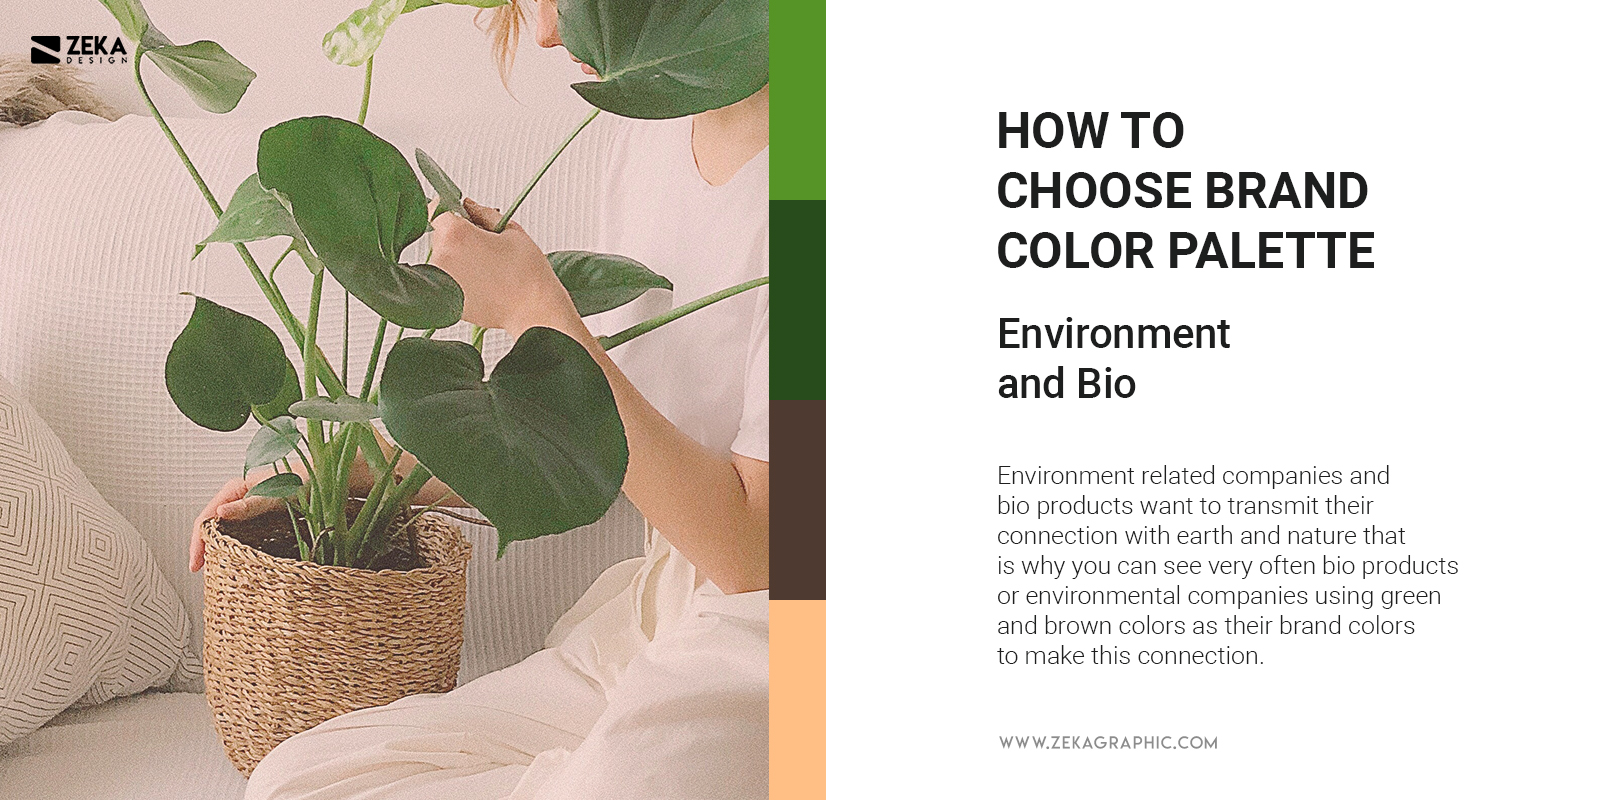 Environment and Bio Eco Brand Colors Trend Branding Tips